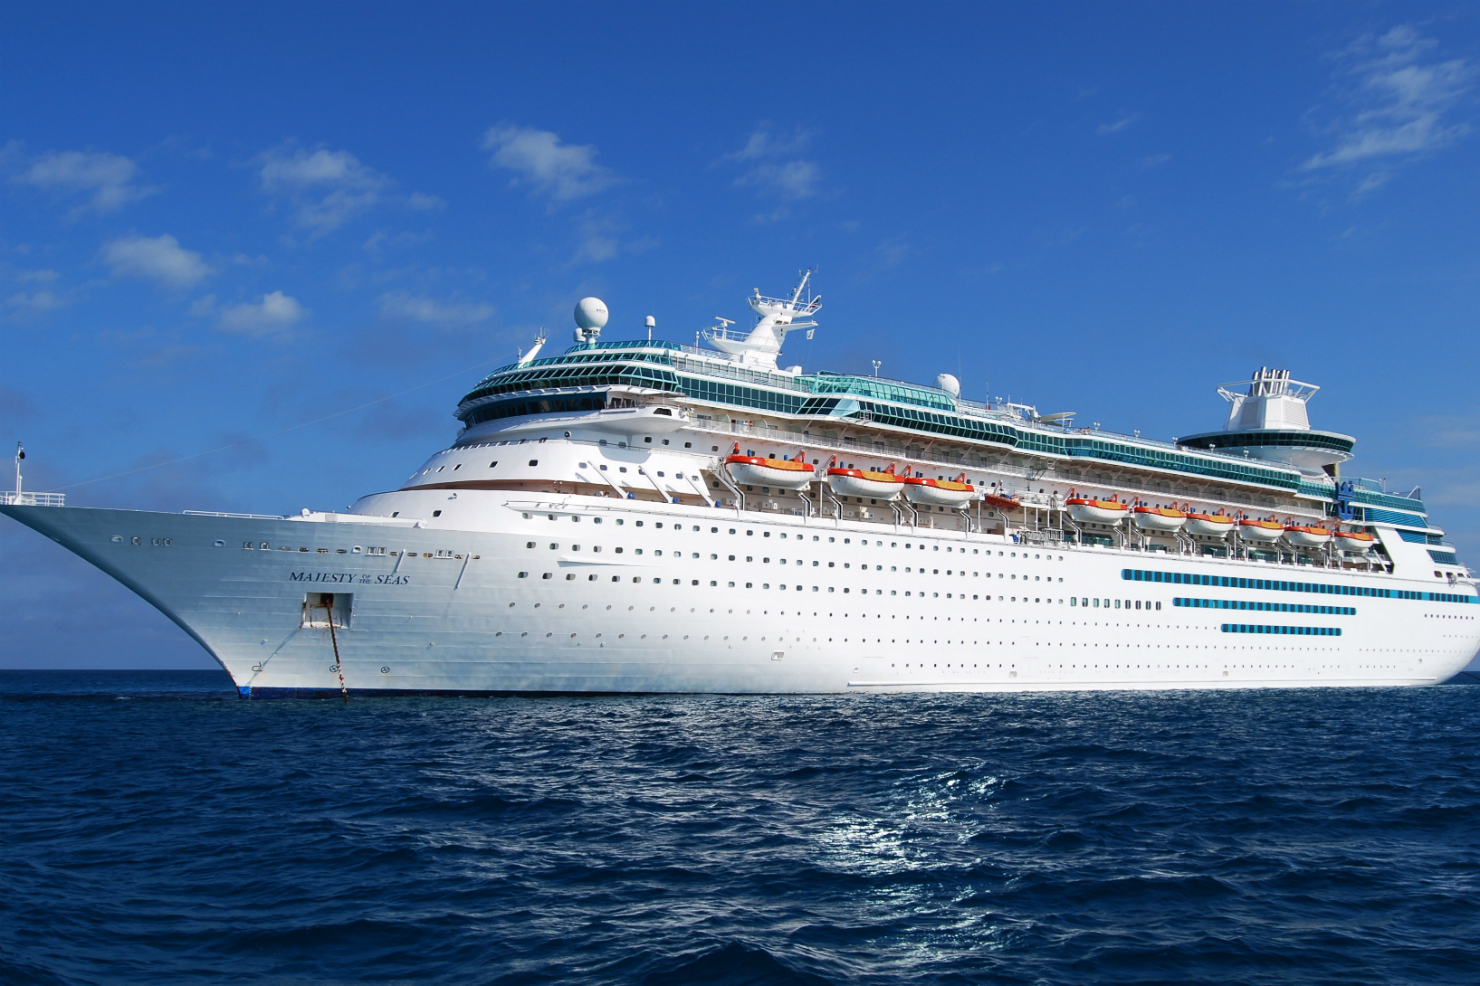 Stay Connected On Your Next Cruise Cruise Ships With Fast WiFi - Internet connection on cruise ships